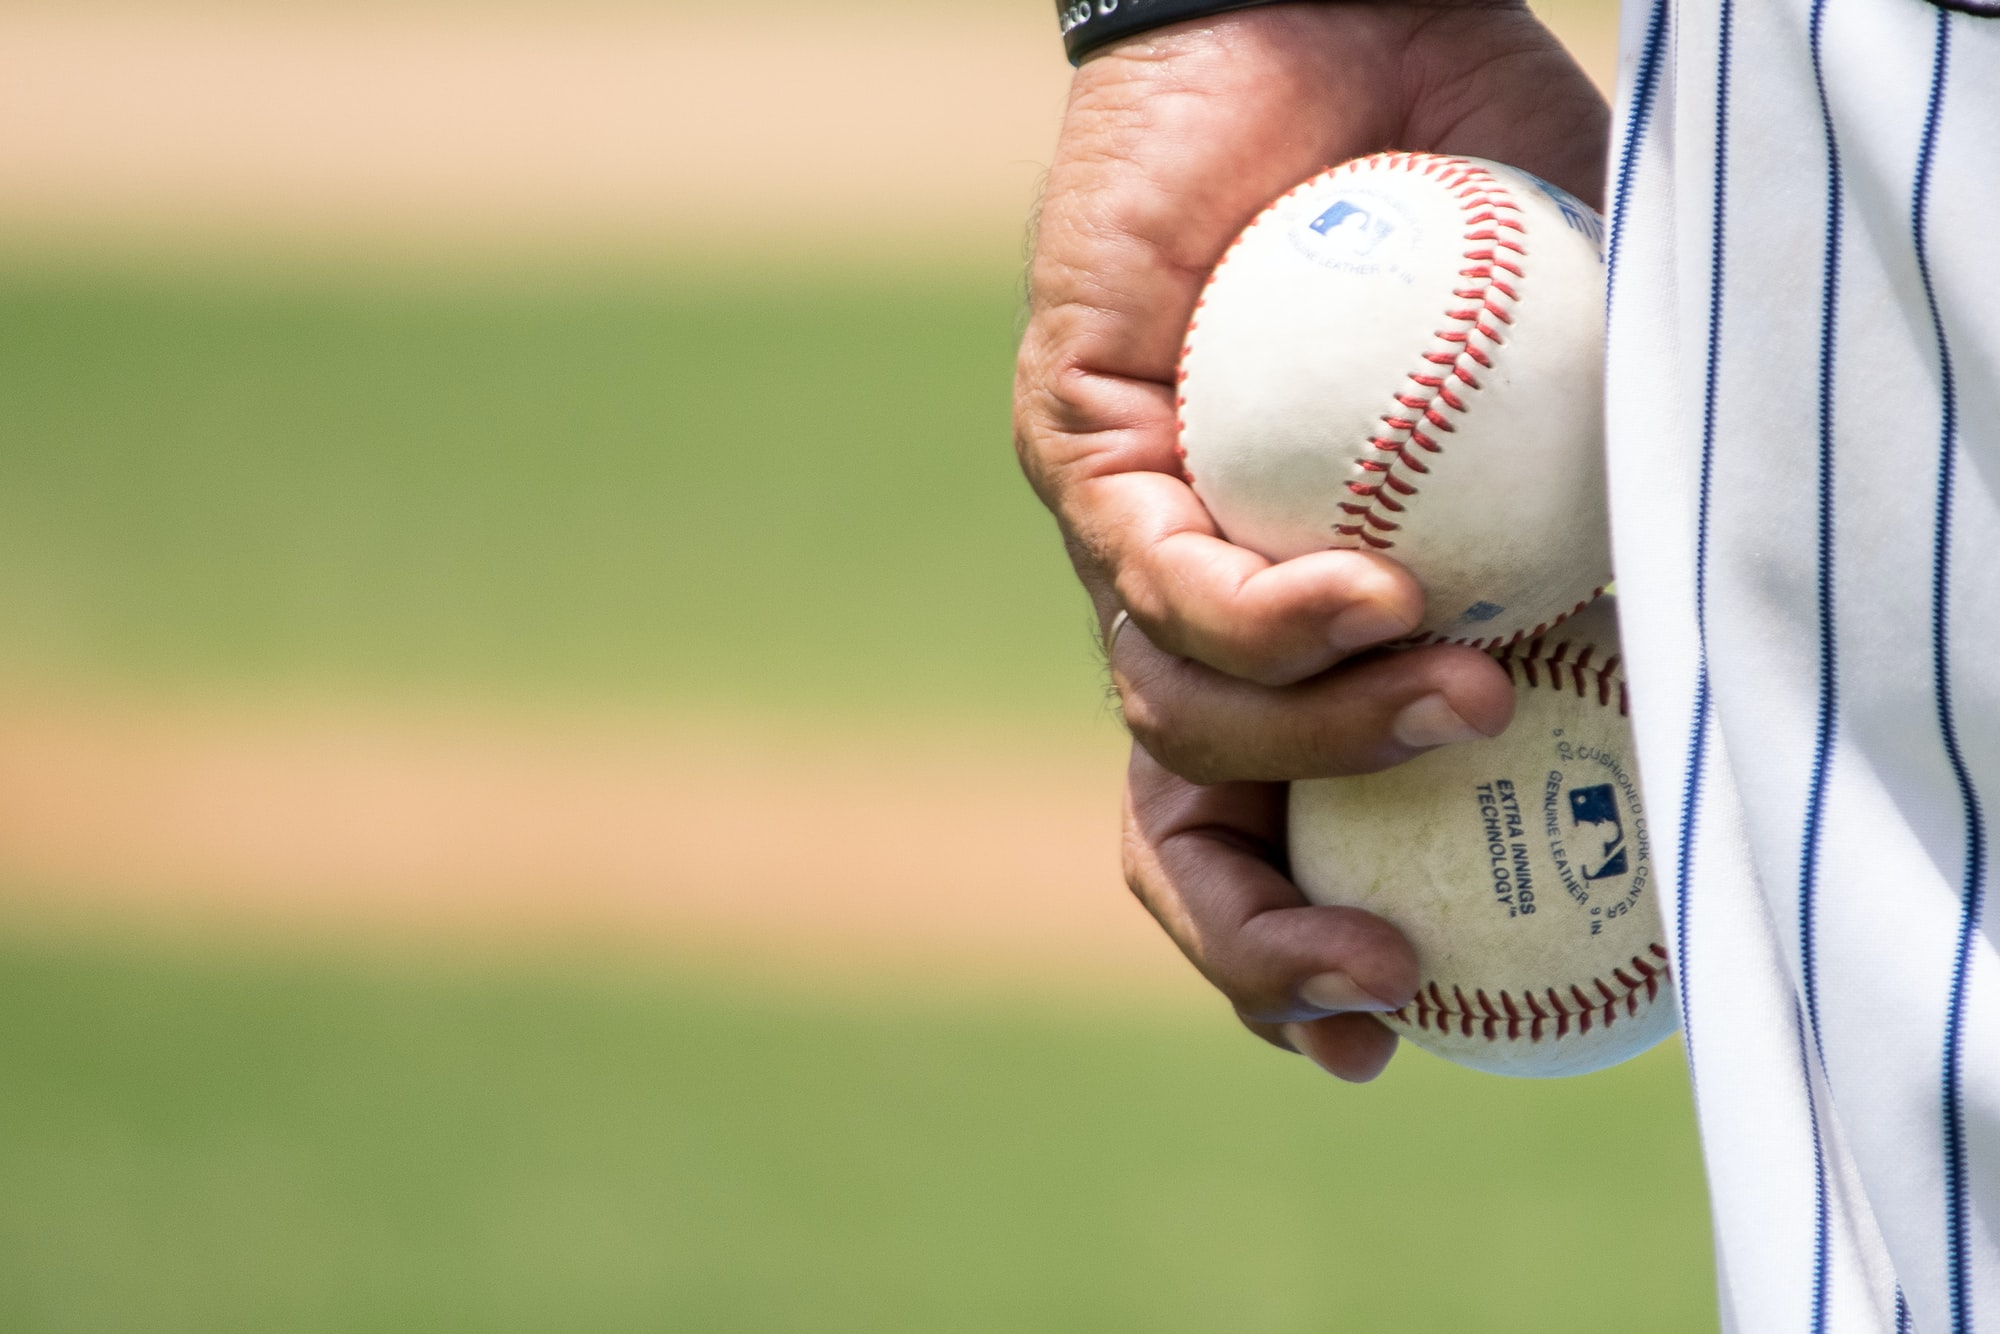 Badass ideas for your 2022 pitch deck to knock your web content out of the park